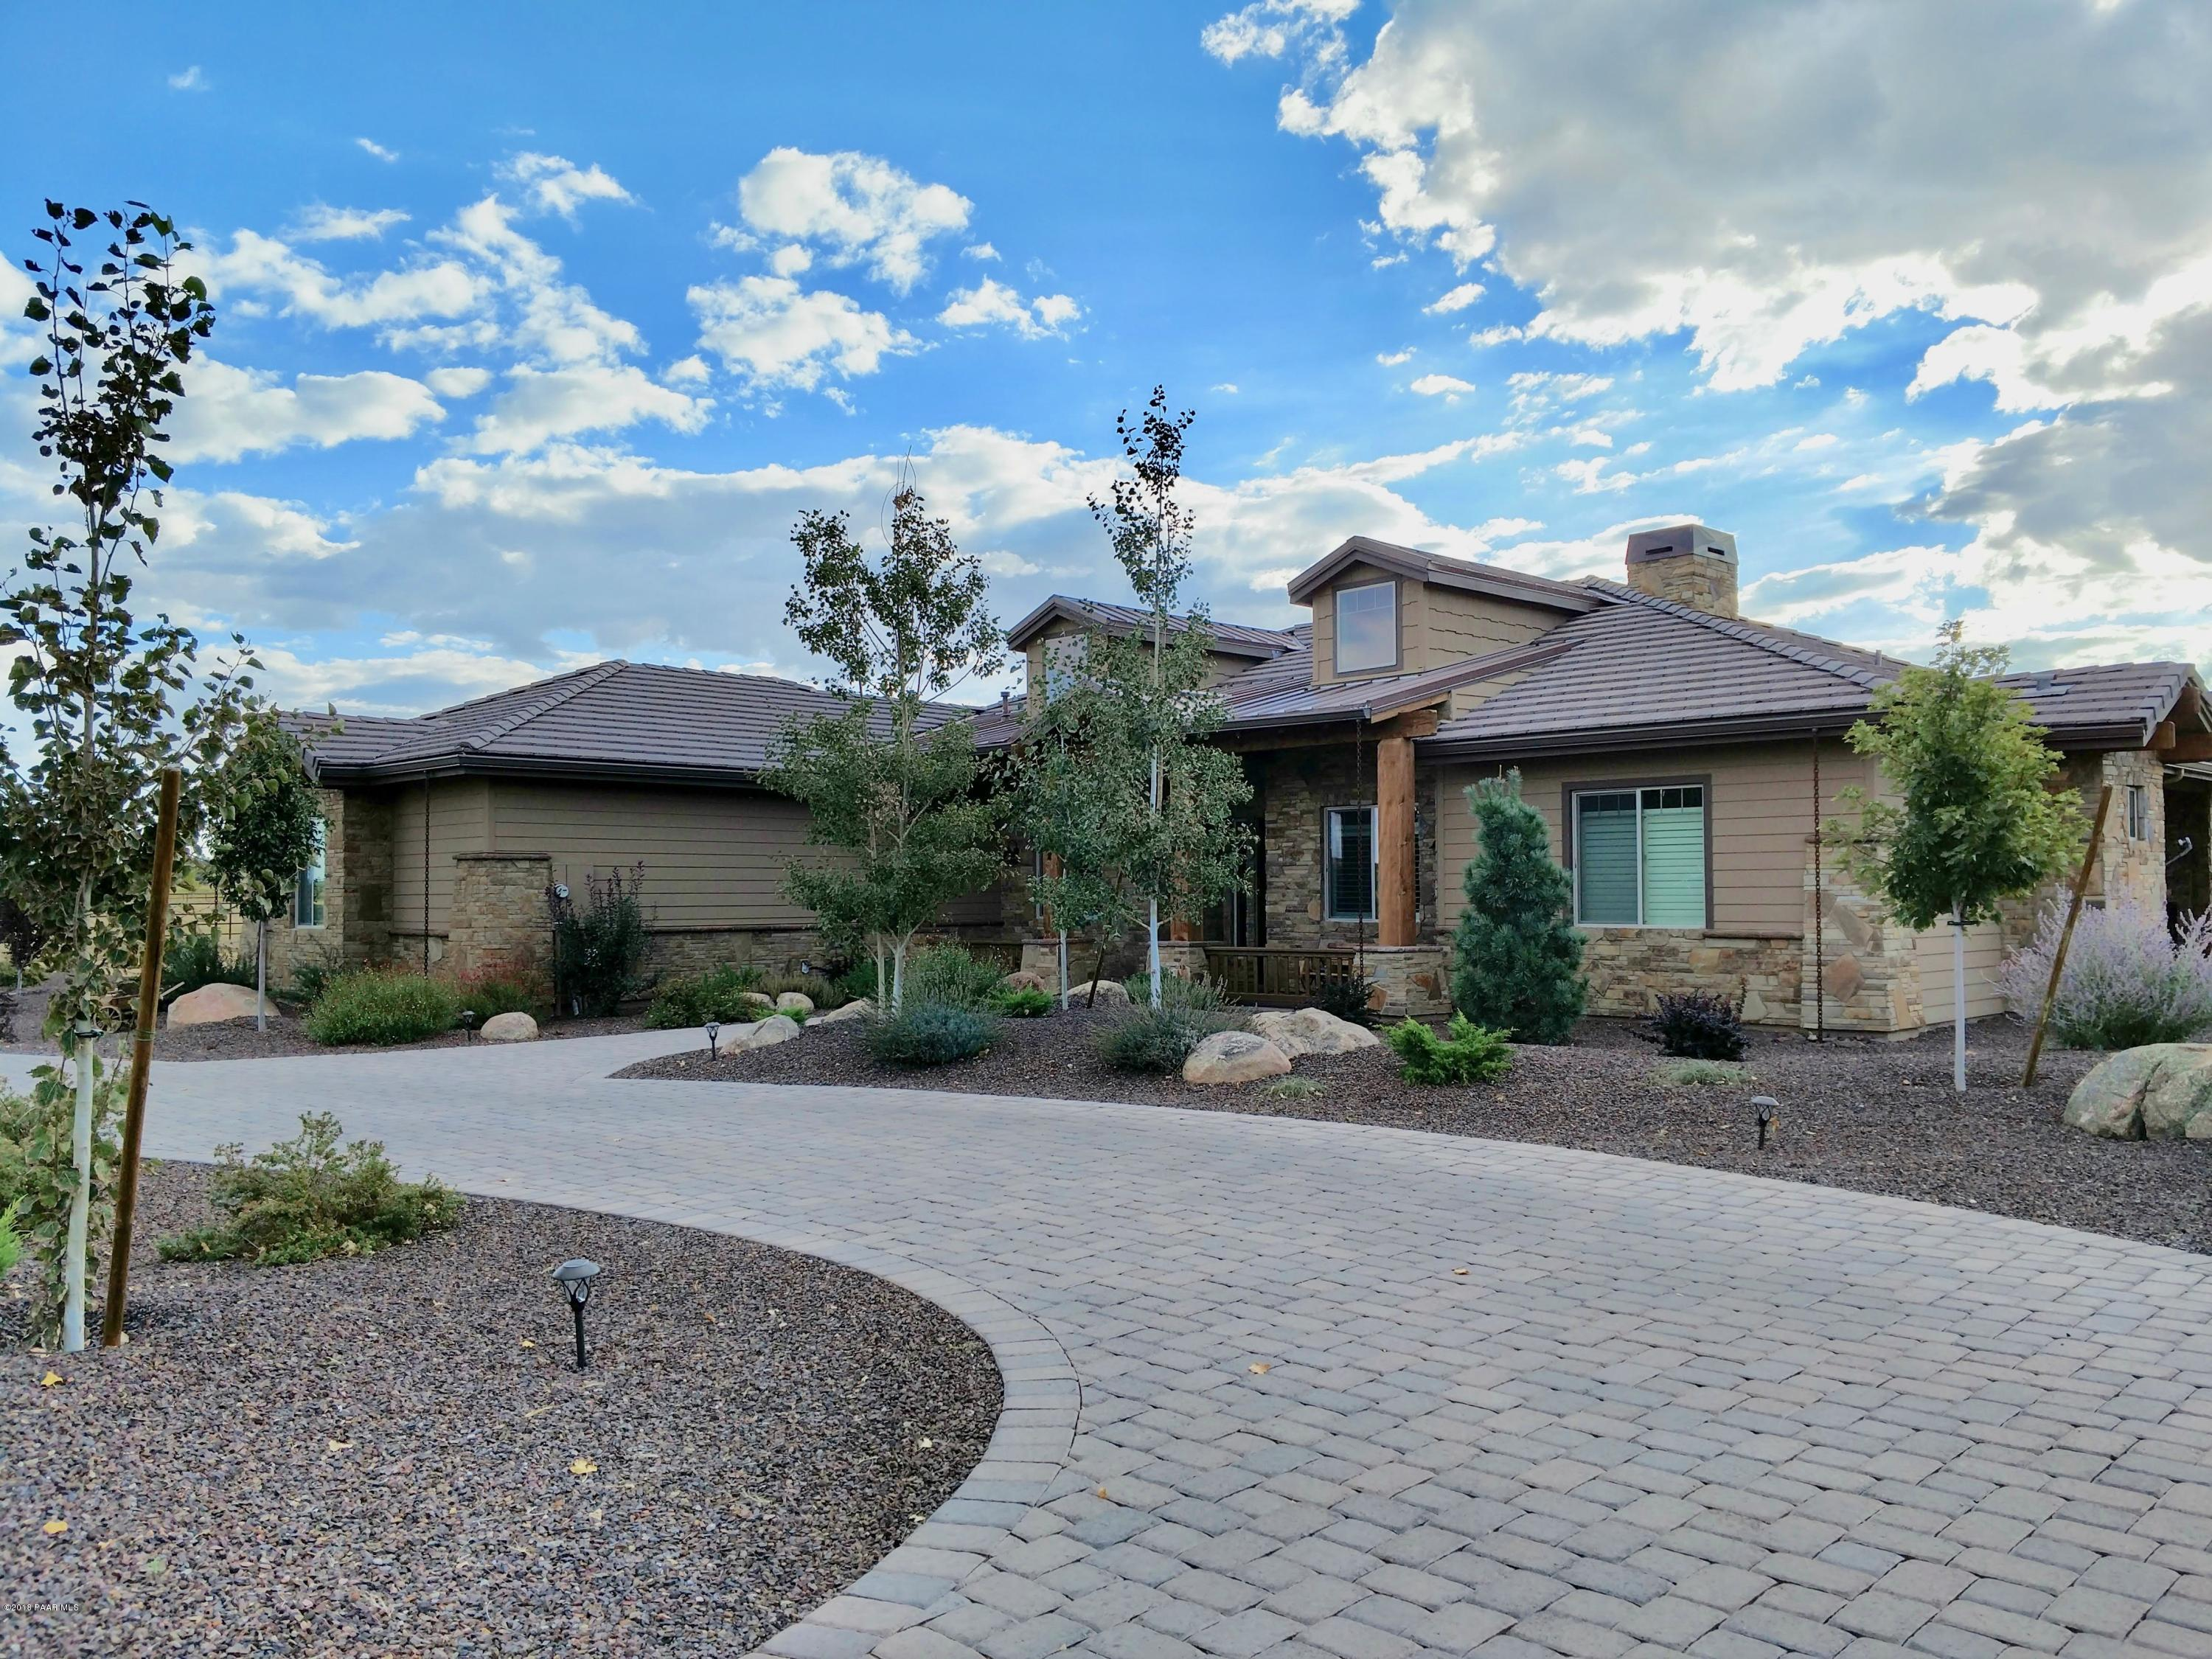 Photo of 9939 American Ranch, Prescott, AZ 86305